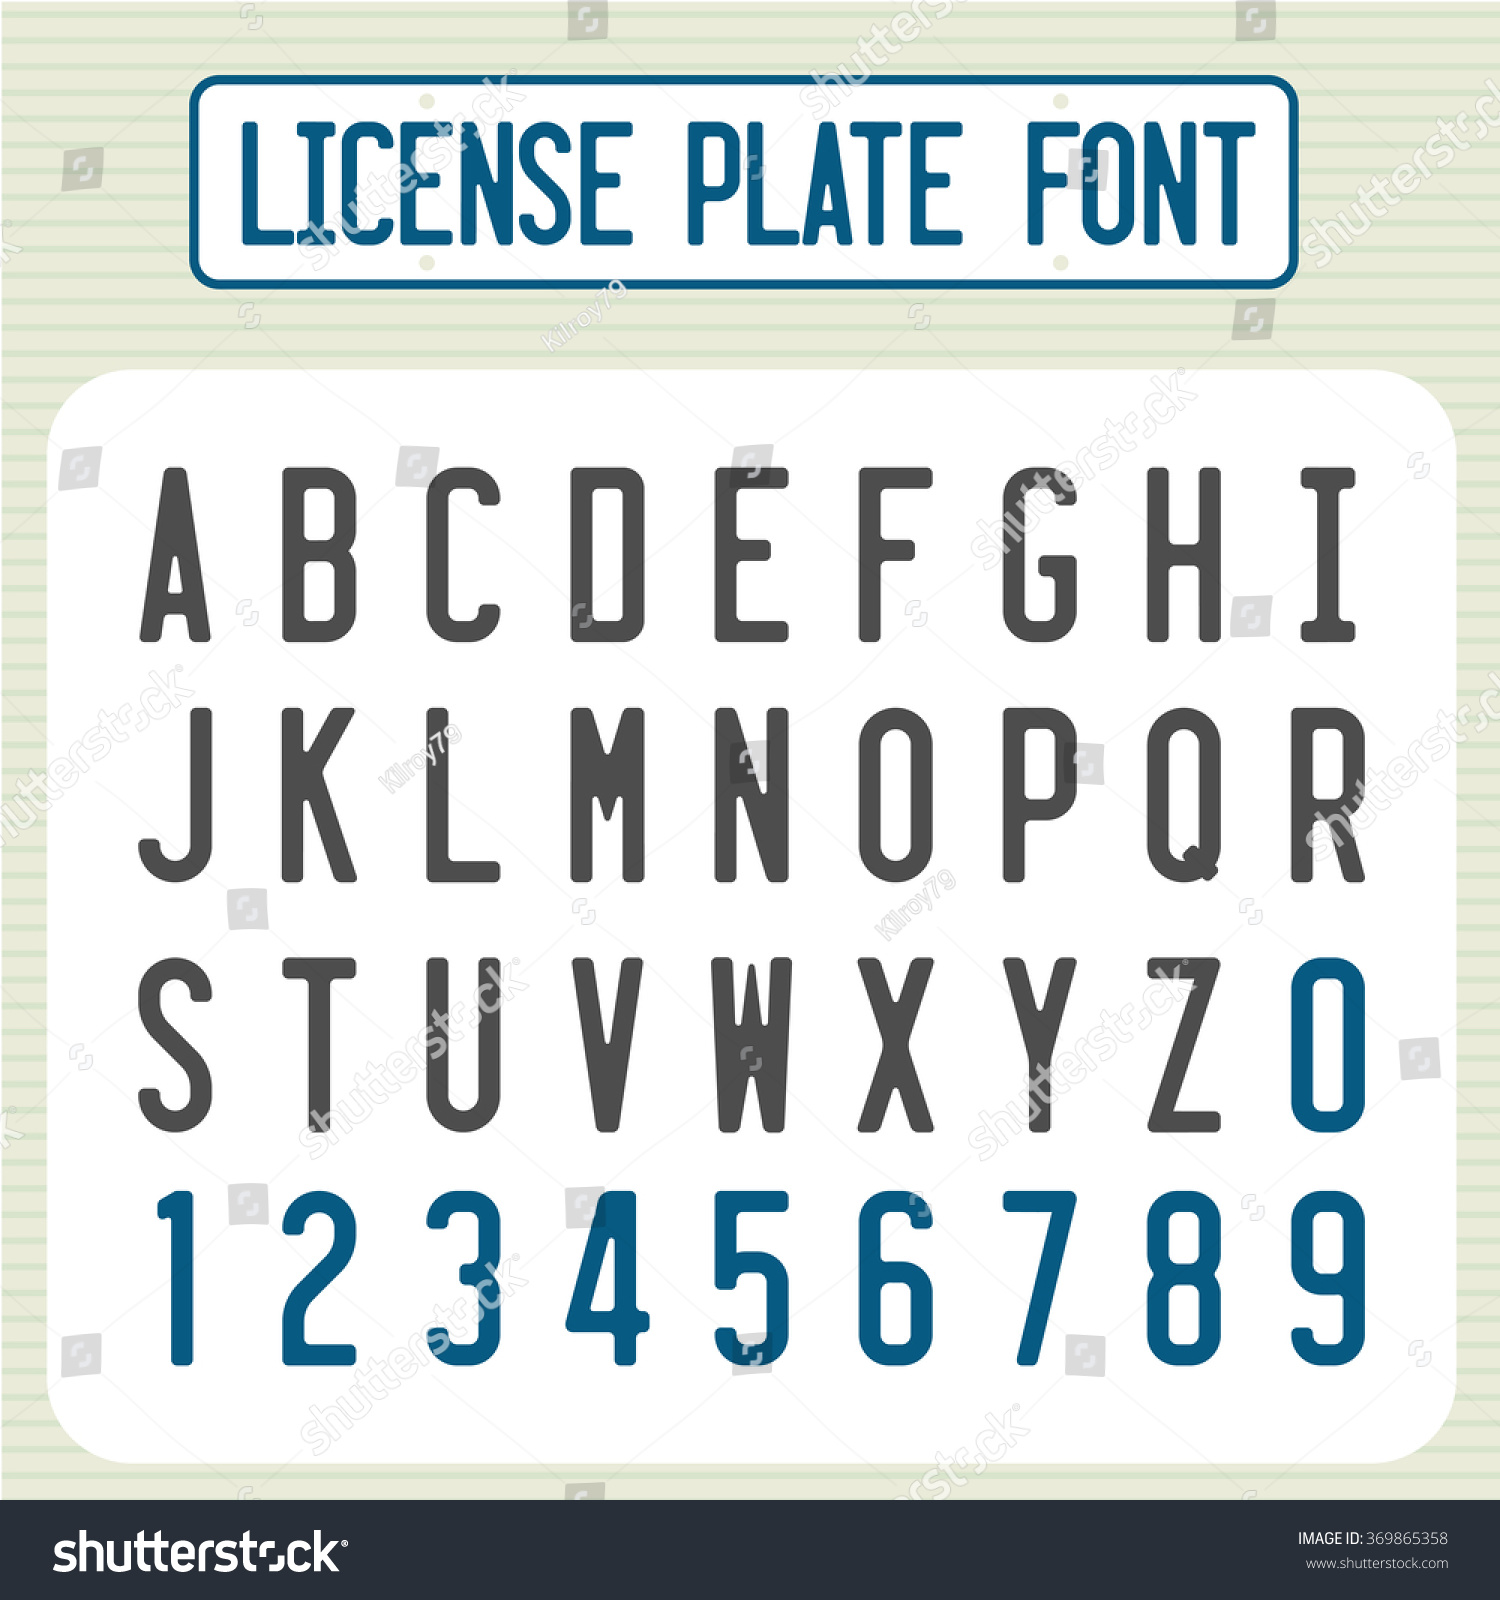 Drivers License Font Download - livinwith